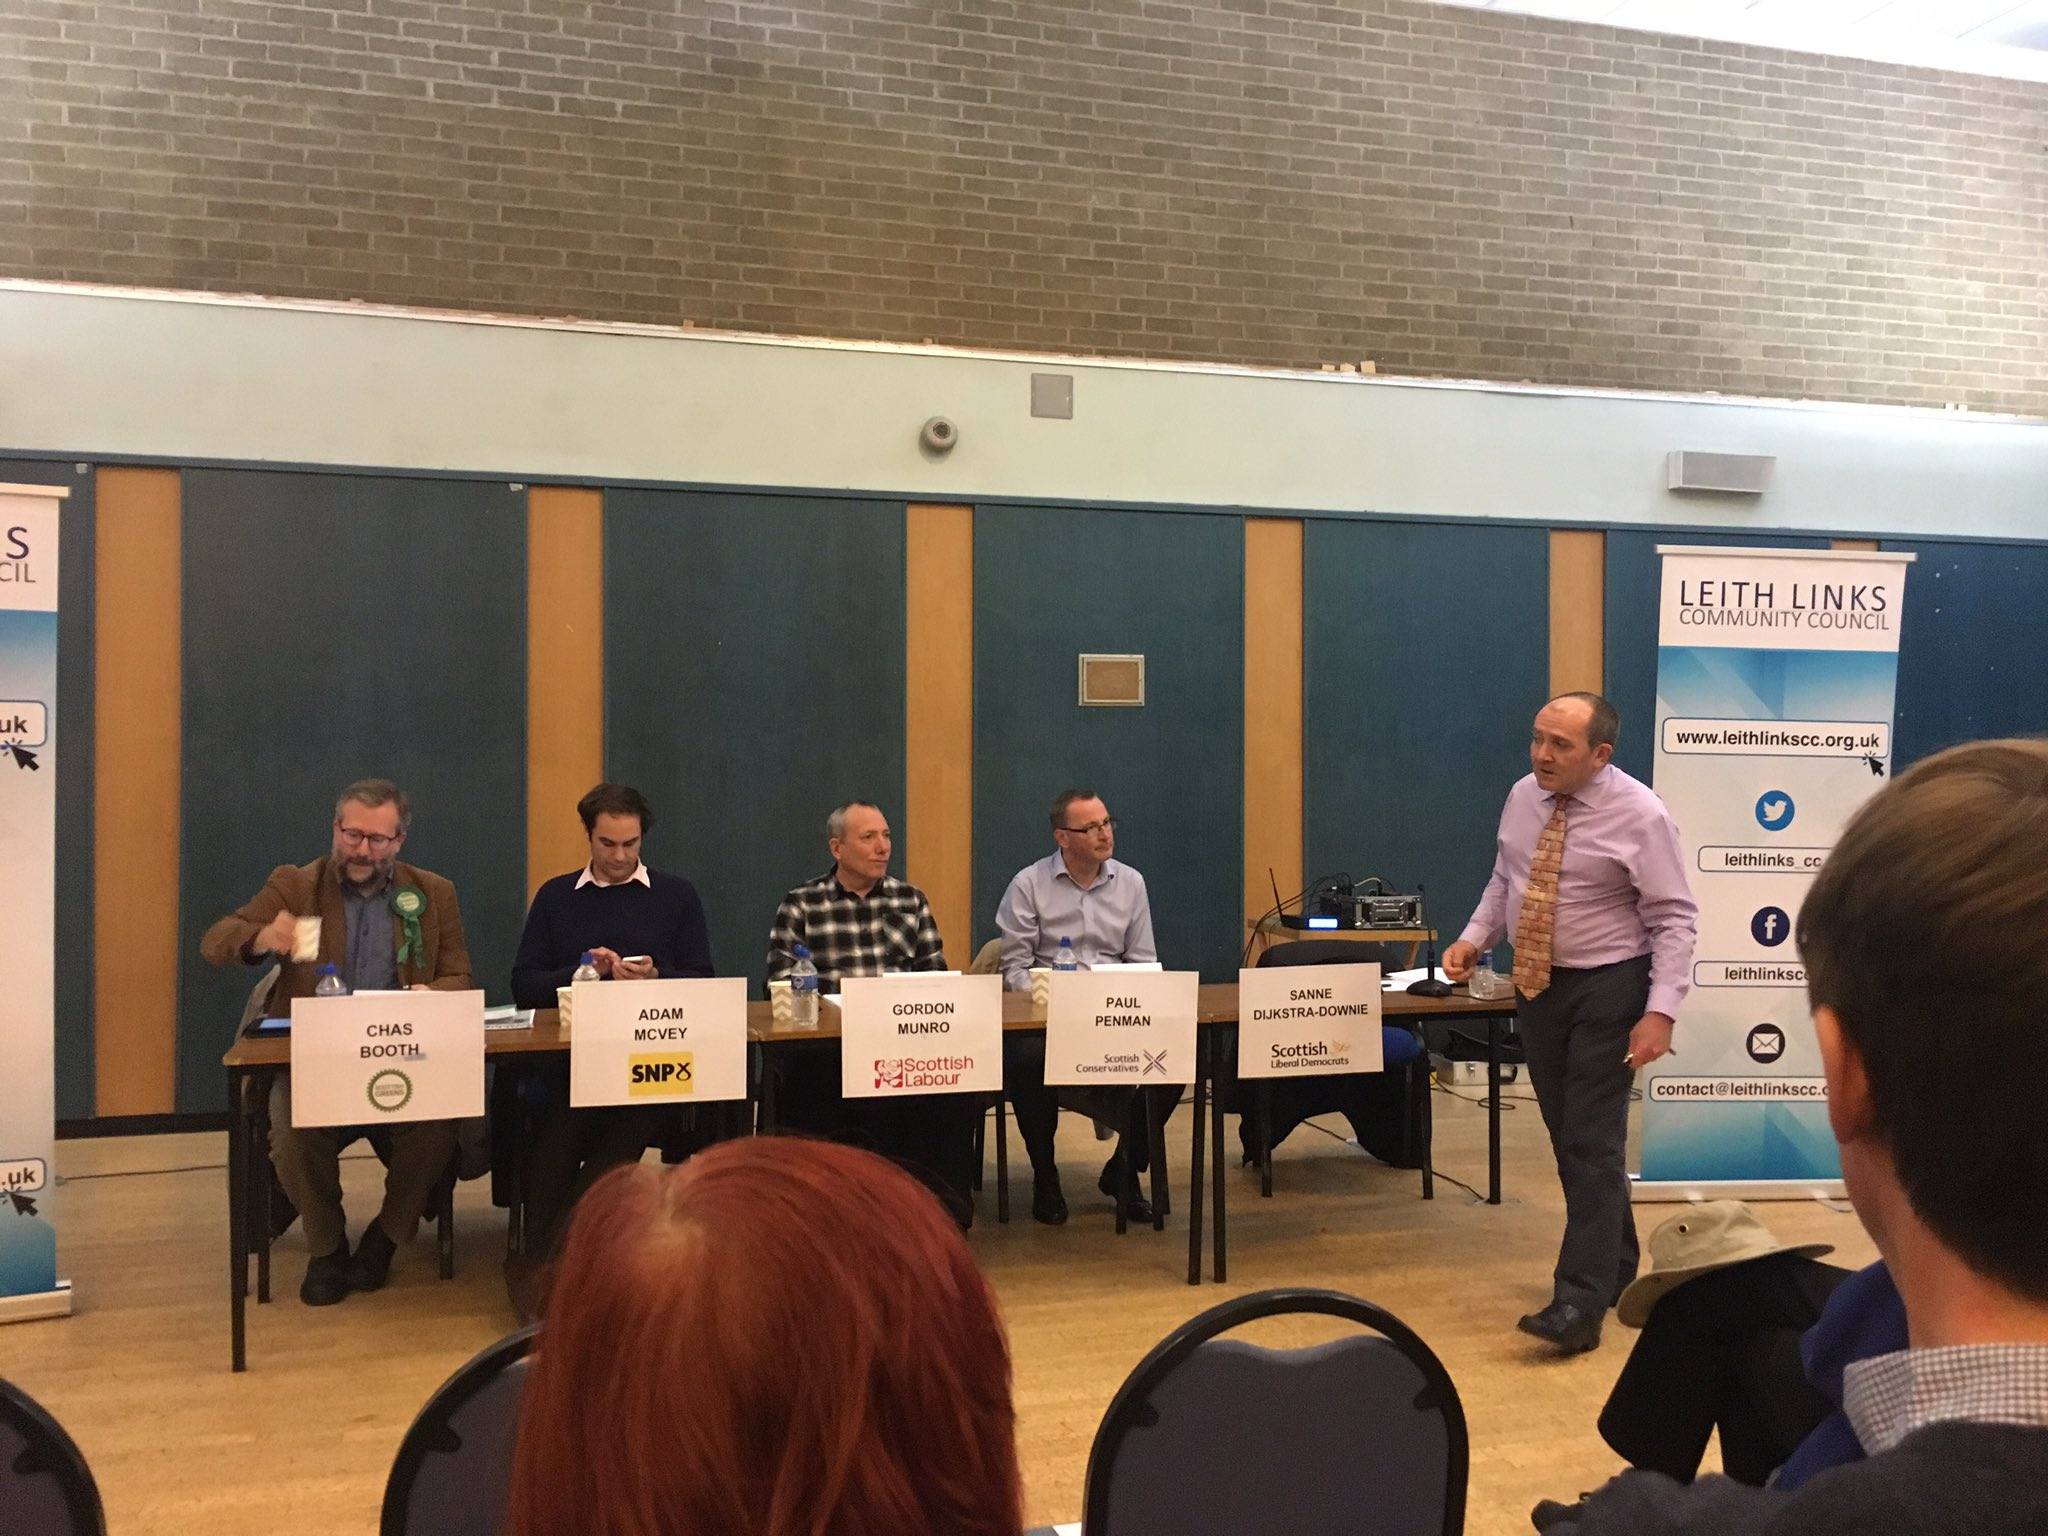 It's kick off time at #leithhustings - the Lib Dems empty chaired as no show, must be off campaigning in Edinburgh West... https://t.co/QwrVscoCZC